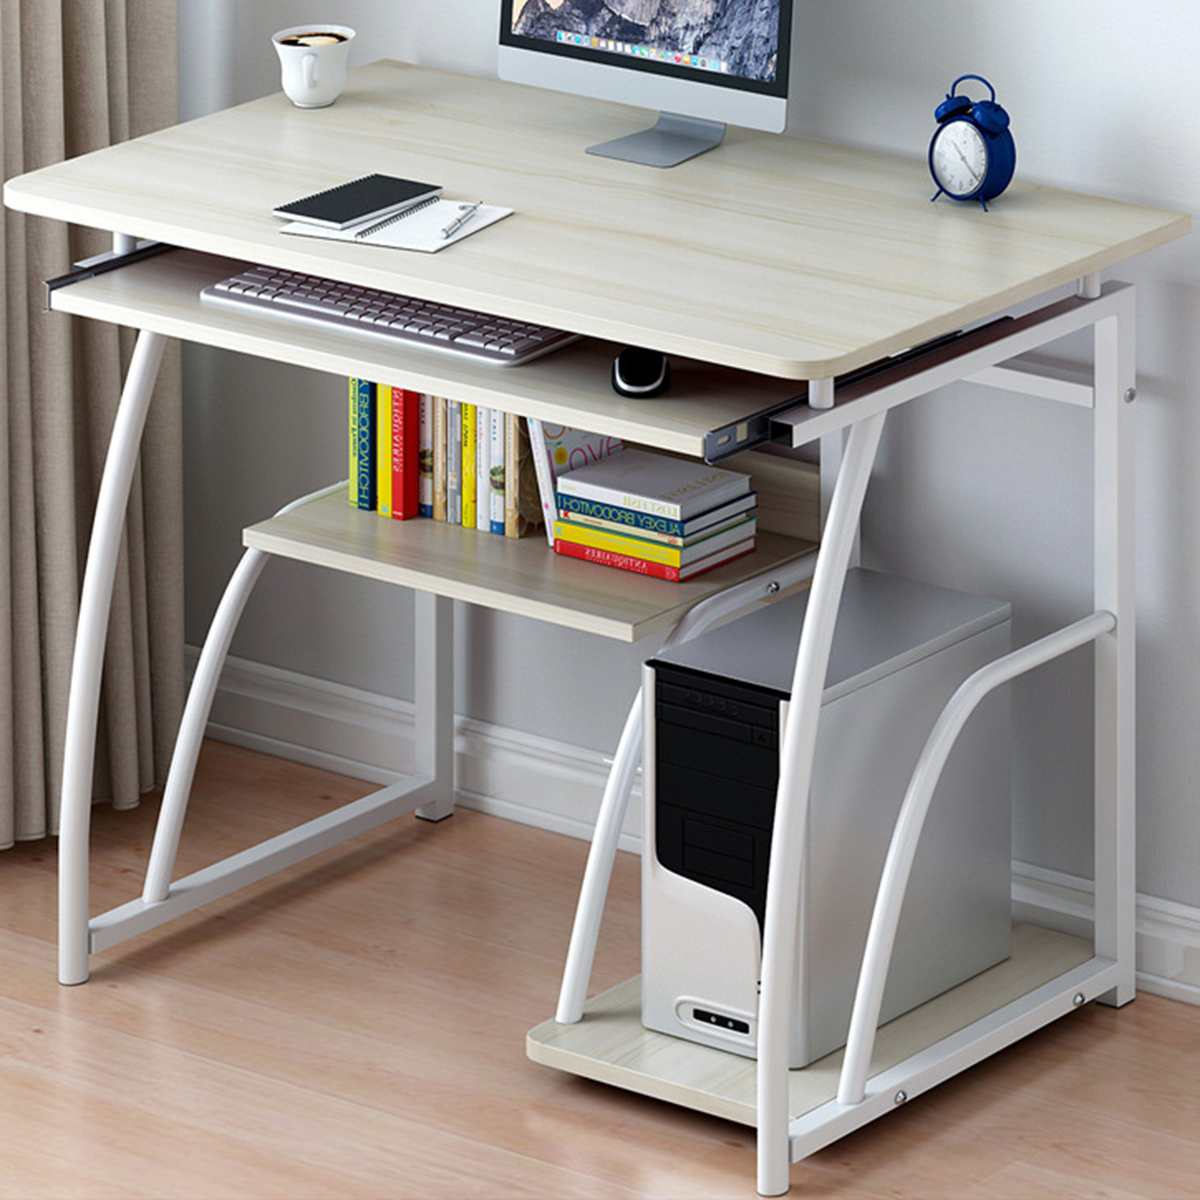 Computer Table Laptop Desk With Keyboard Bracket Laptop Bed Table Floor Standing Desk Home Office Furniture 71cm